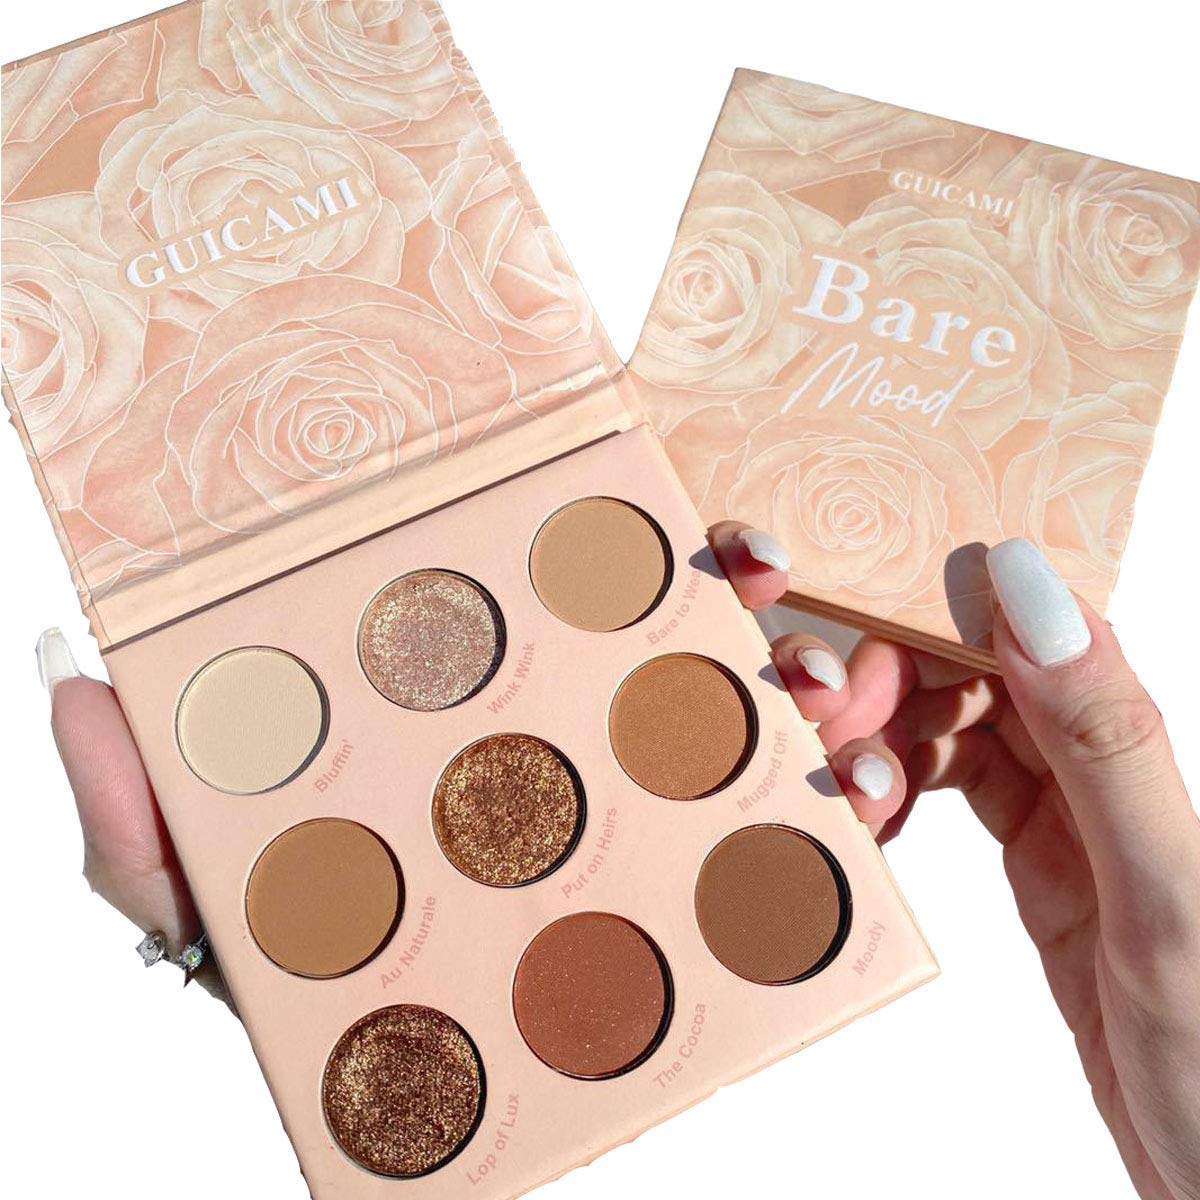 9 Colors Nude Eyeshadow Palette Set Naked Shimmer Matte Pigmented Blendable Eye Shadow Pallet Natural Naked Waterproof Blendable Makeup Palette Without Flying Powder (brown)